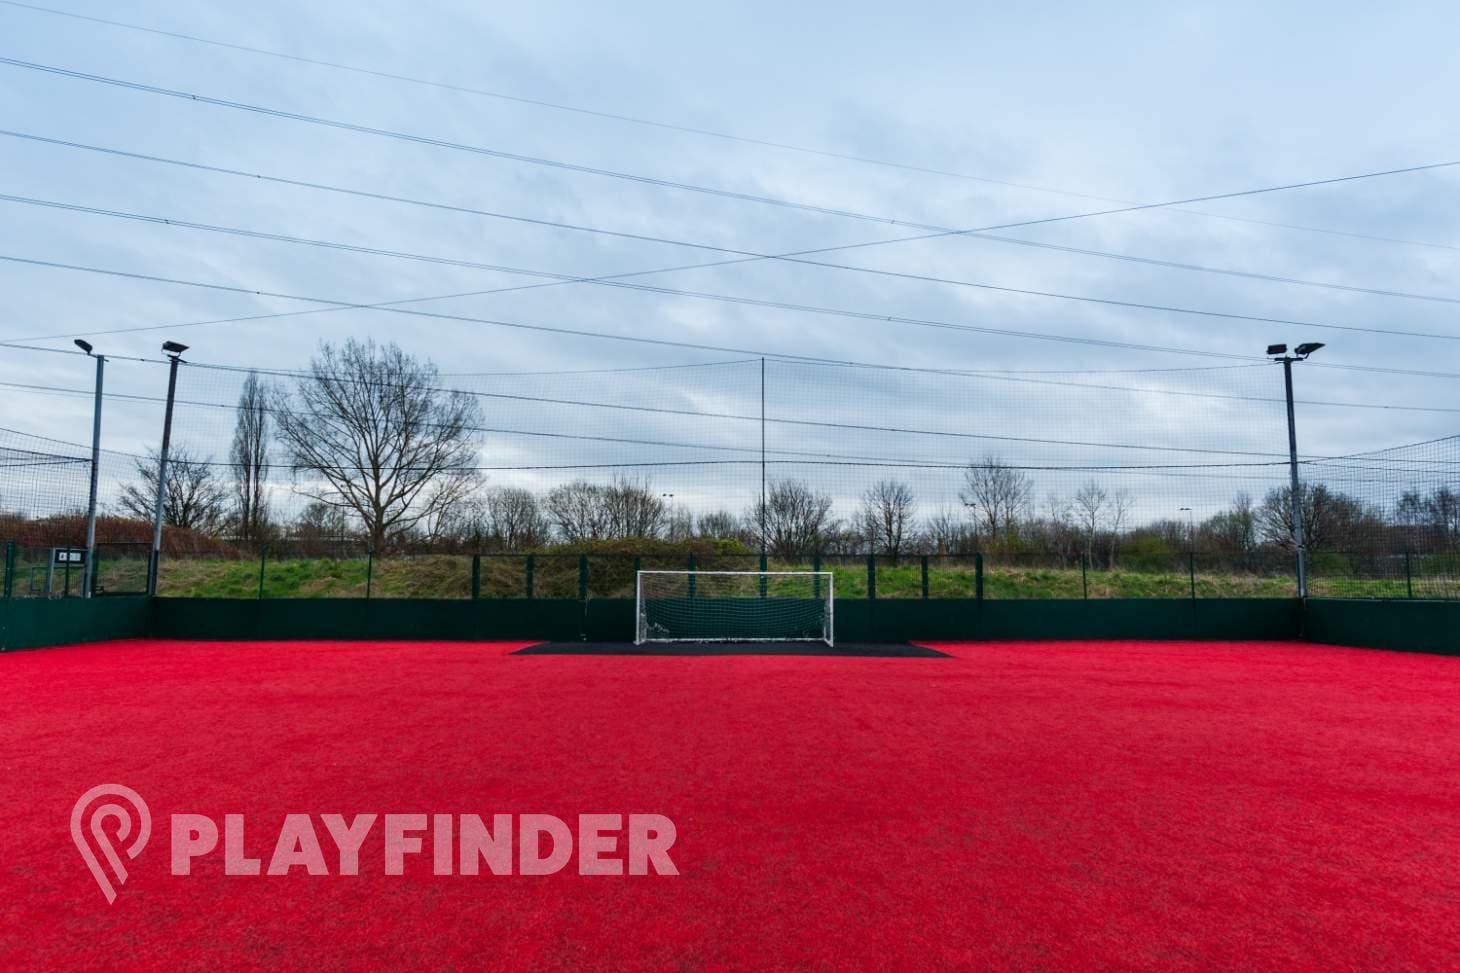 Powerleague Stockport 7 a side | 3G Astroturf football pitch